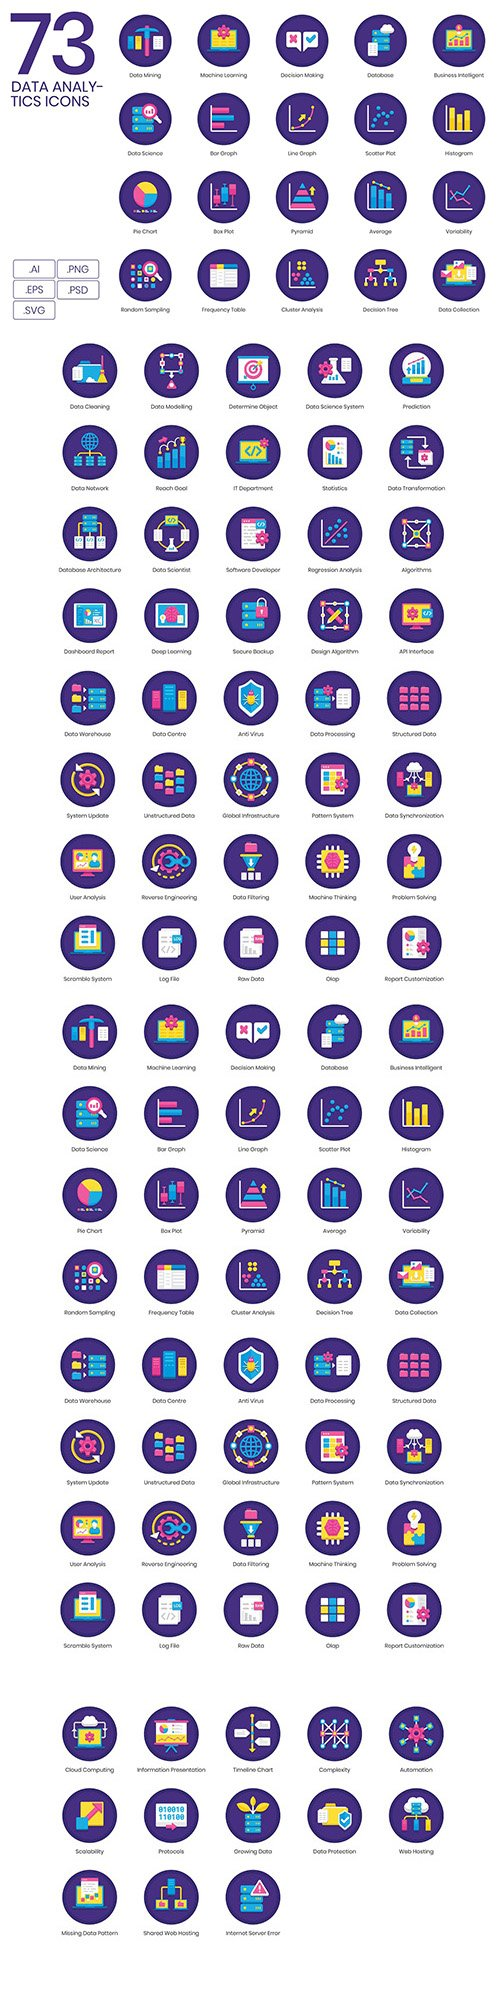 73 Big Data & Analytics Icons | Orchid Series